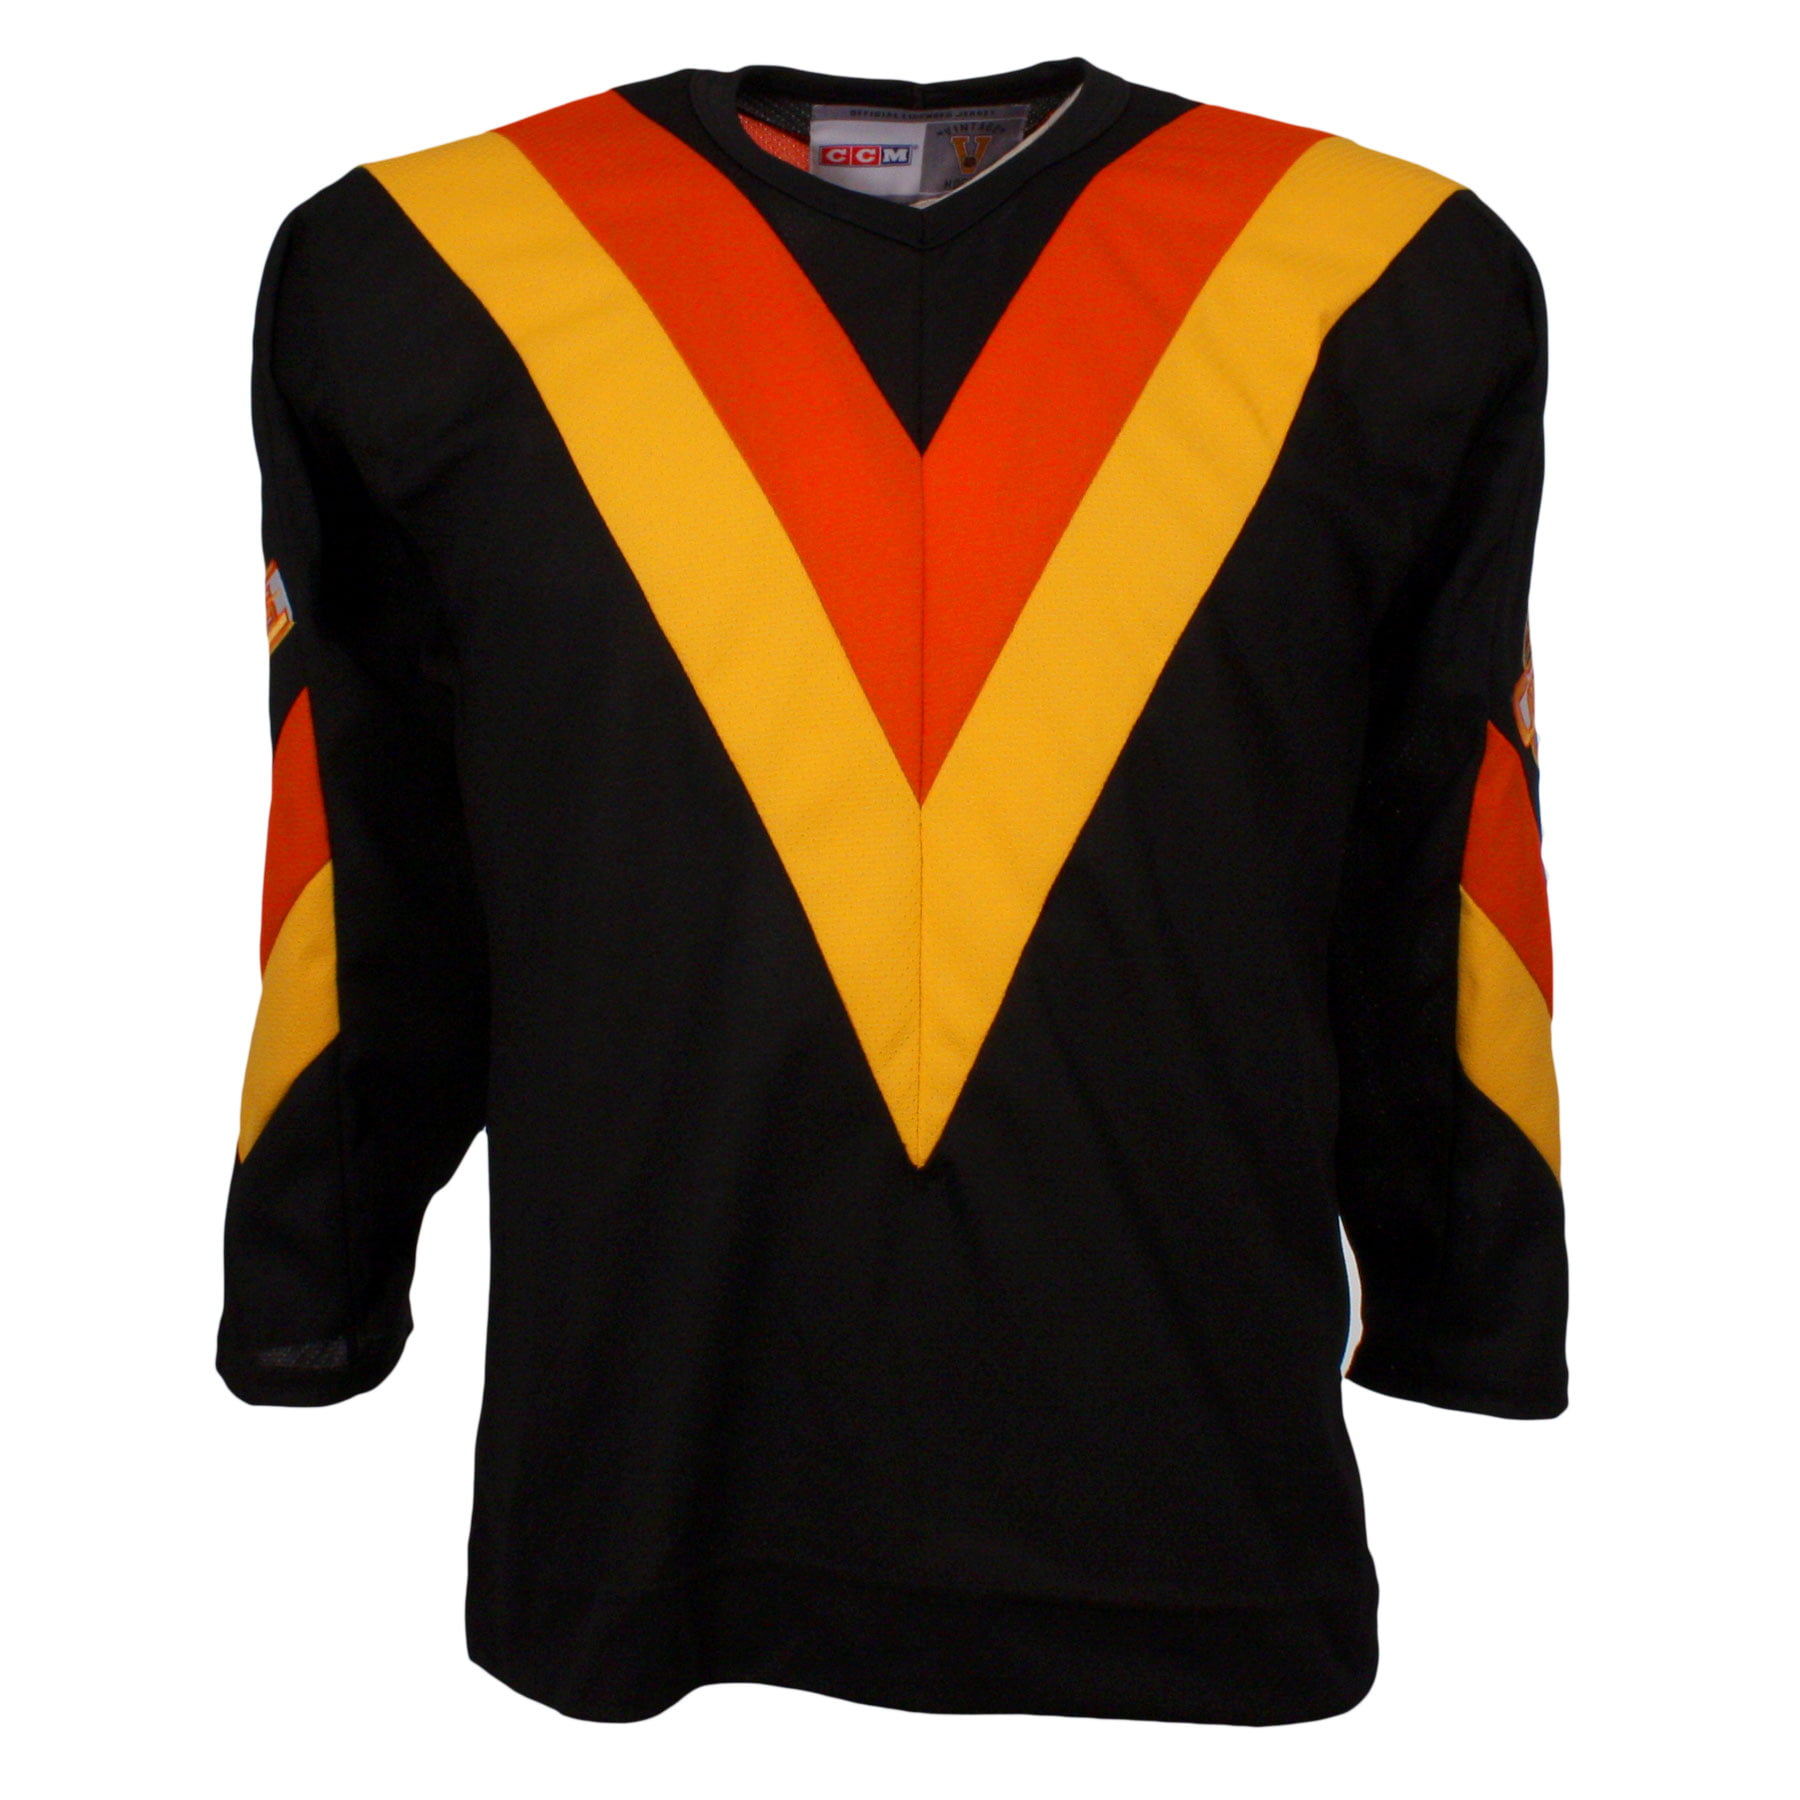 sneakers for cheap 4fed8 73cf6 Vancouver Canucks Vintage Replica Jersey 1983 (Away) - CCM ...